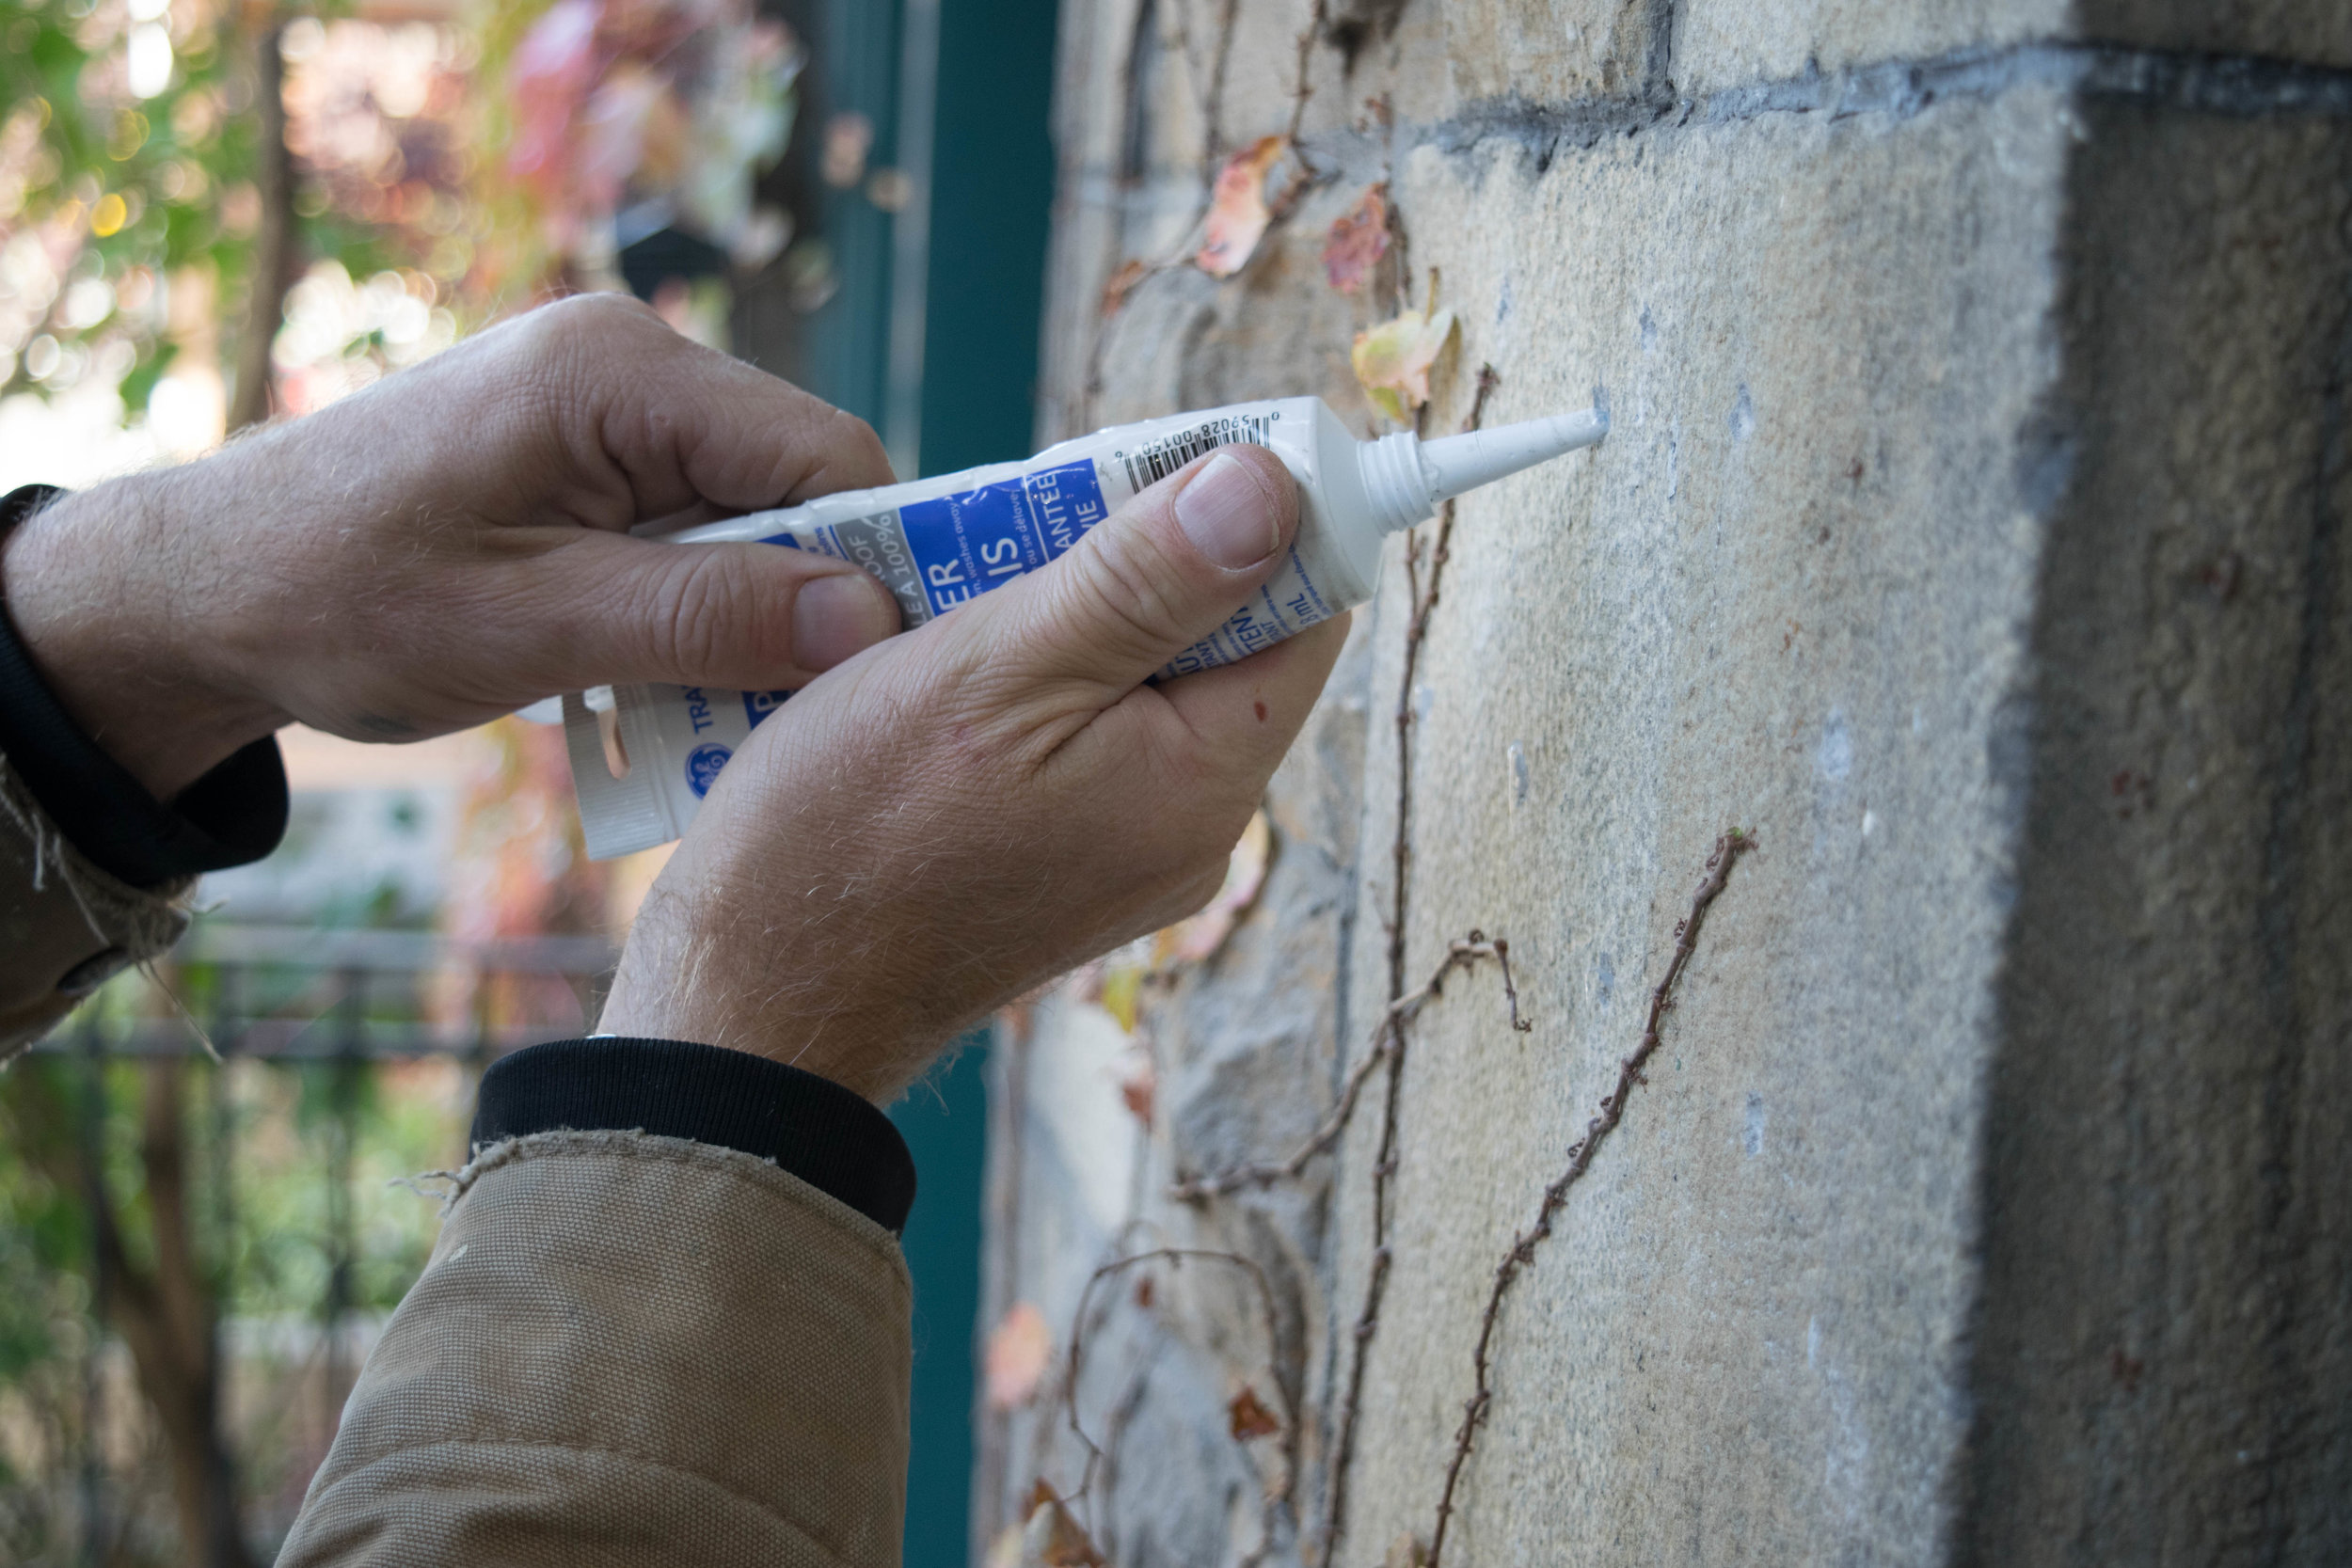 - To secure the numbers onto the wall, you may want to add a drop of silicone into each hole before inserting the stud-mounted numbers.